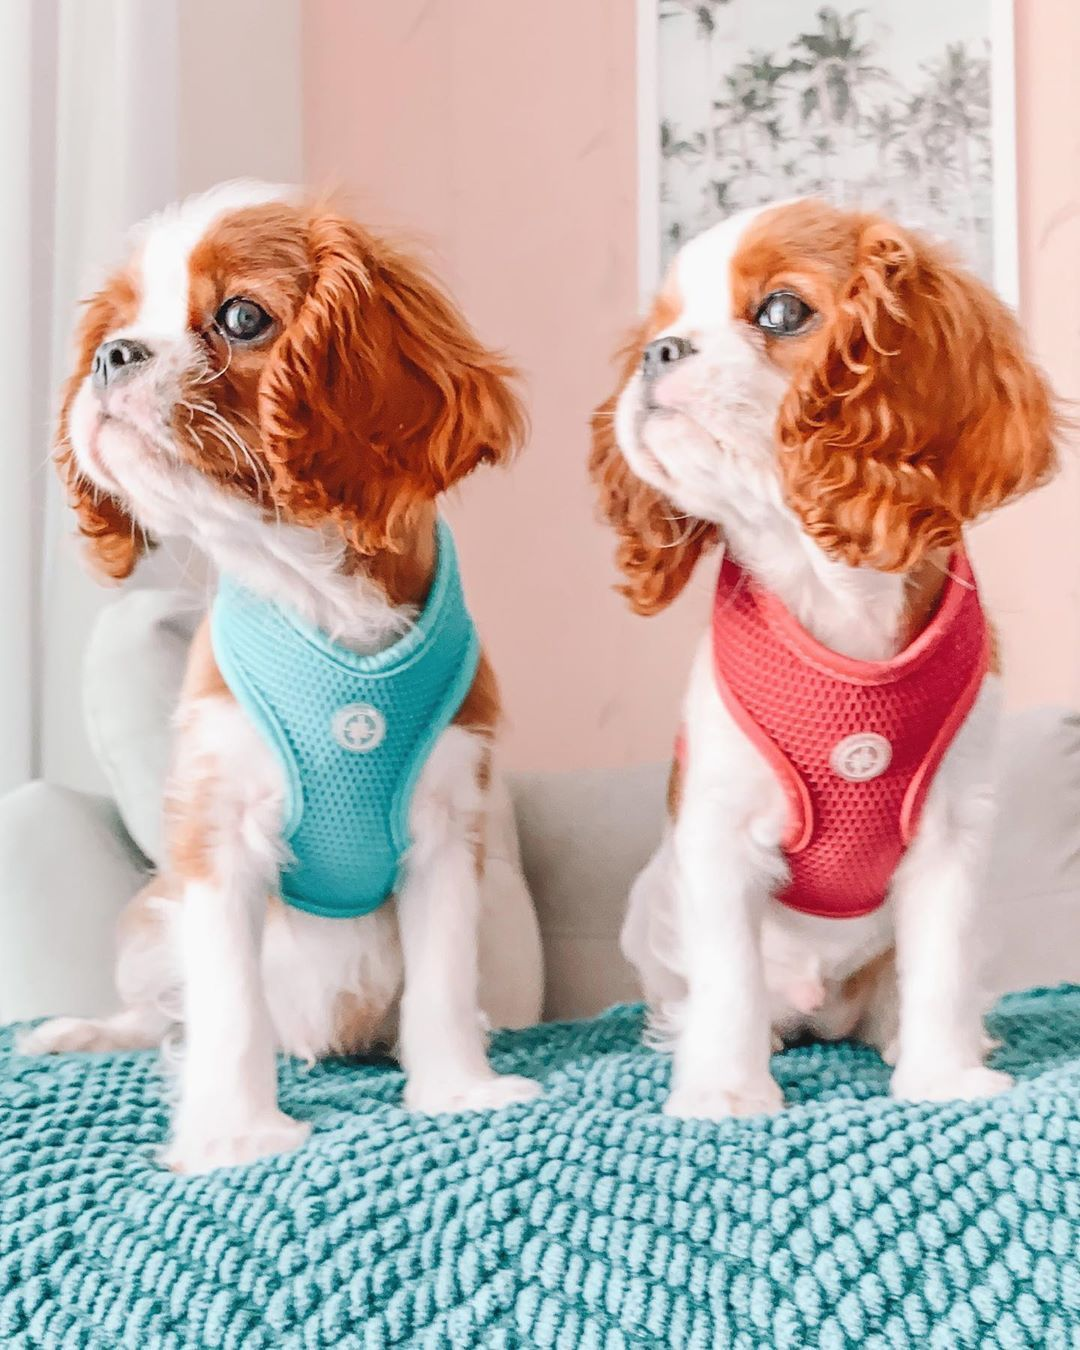 Tanner Tatum On Instagram Do You Like Our New Outfits Ca In 2020 King Charles Cavalier Spaniel Puppy Cavalier Dog Cavalier King Charles Spaniel